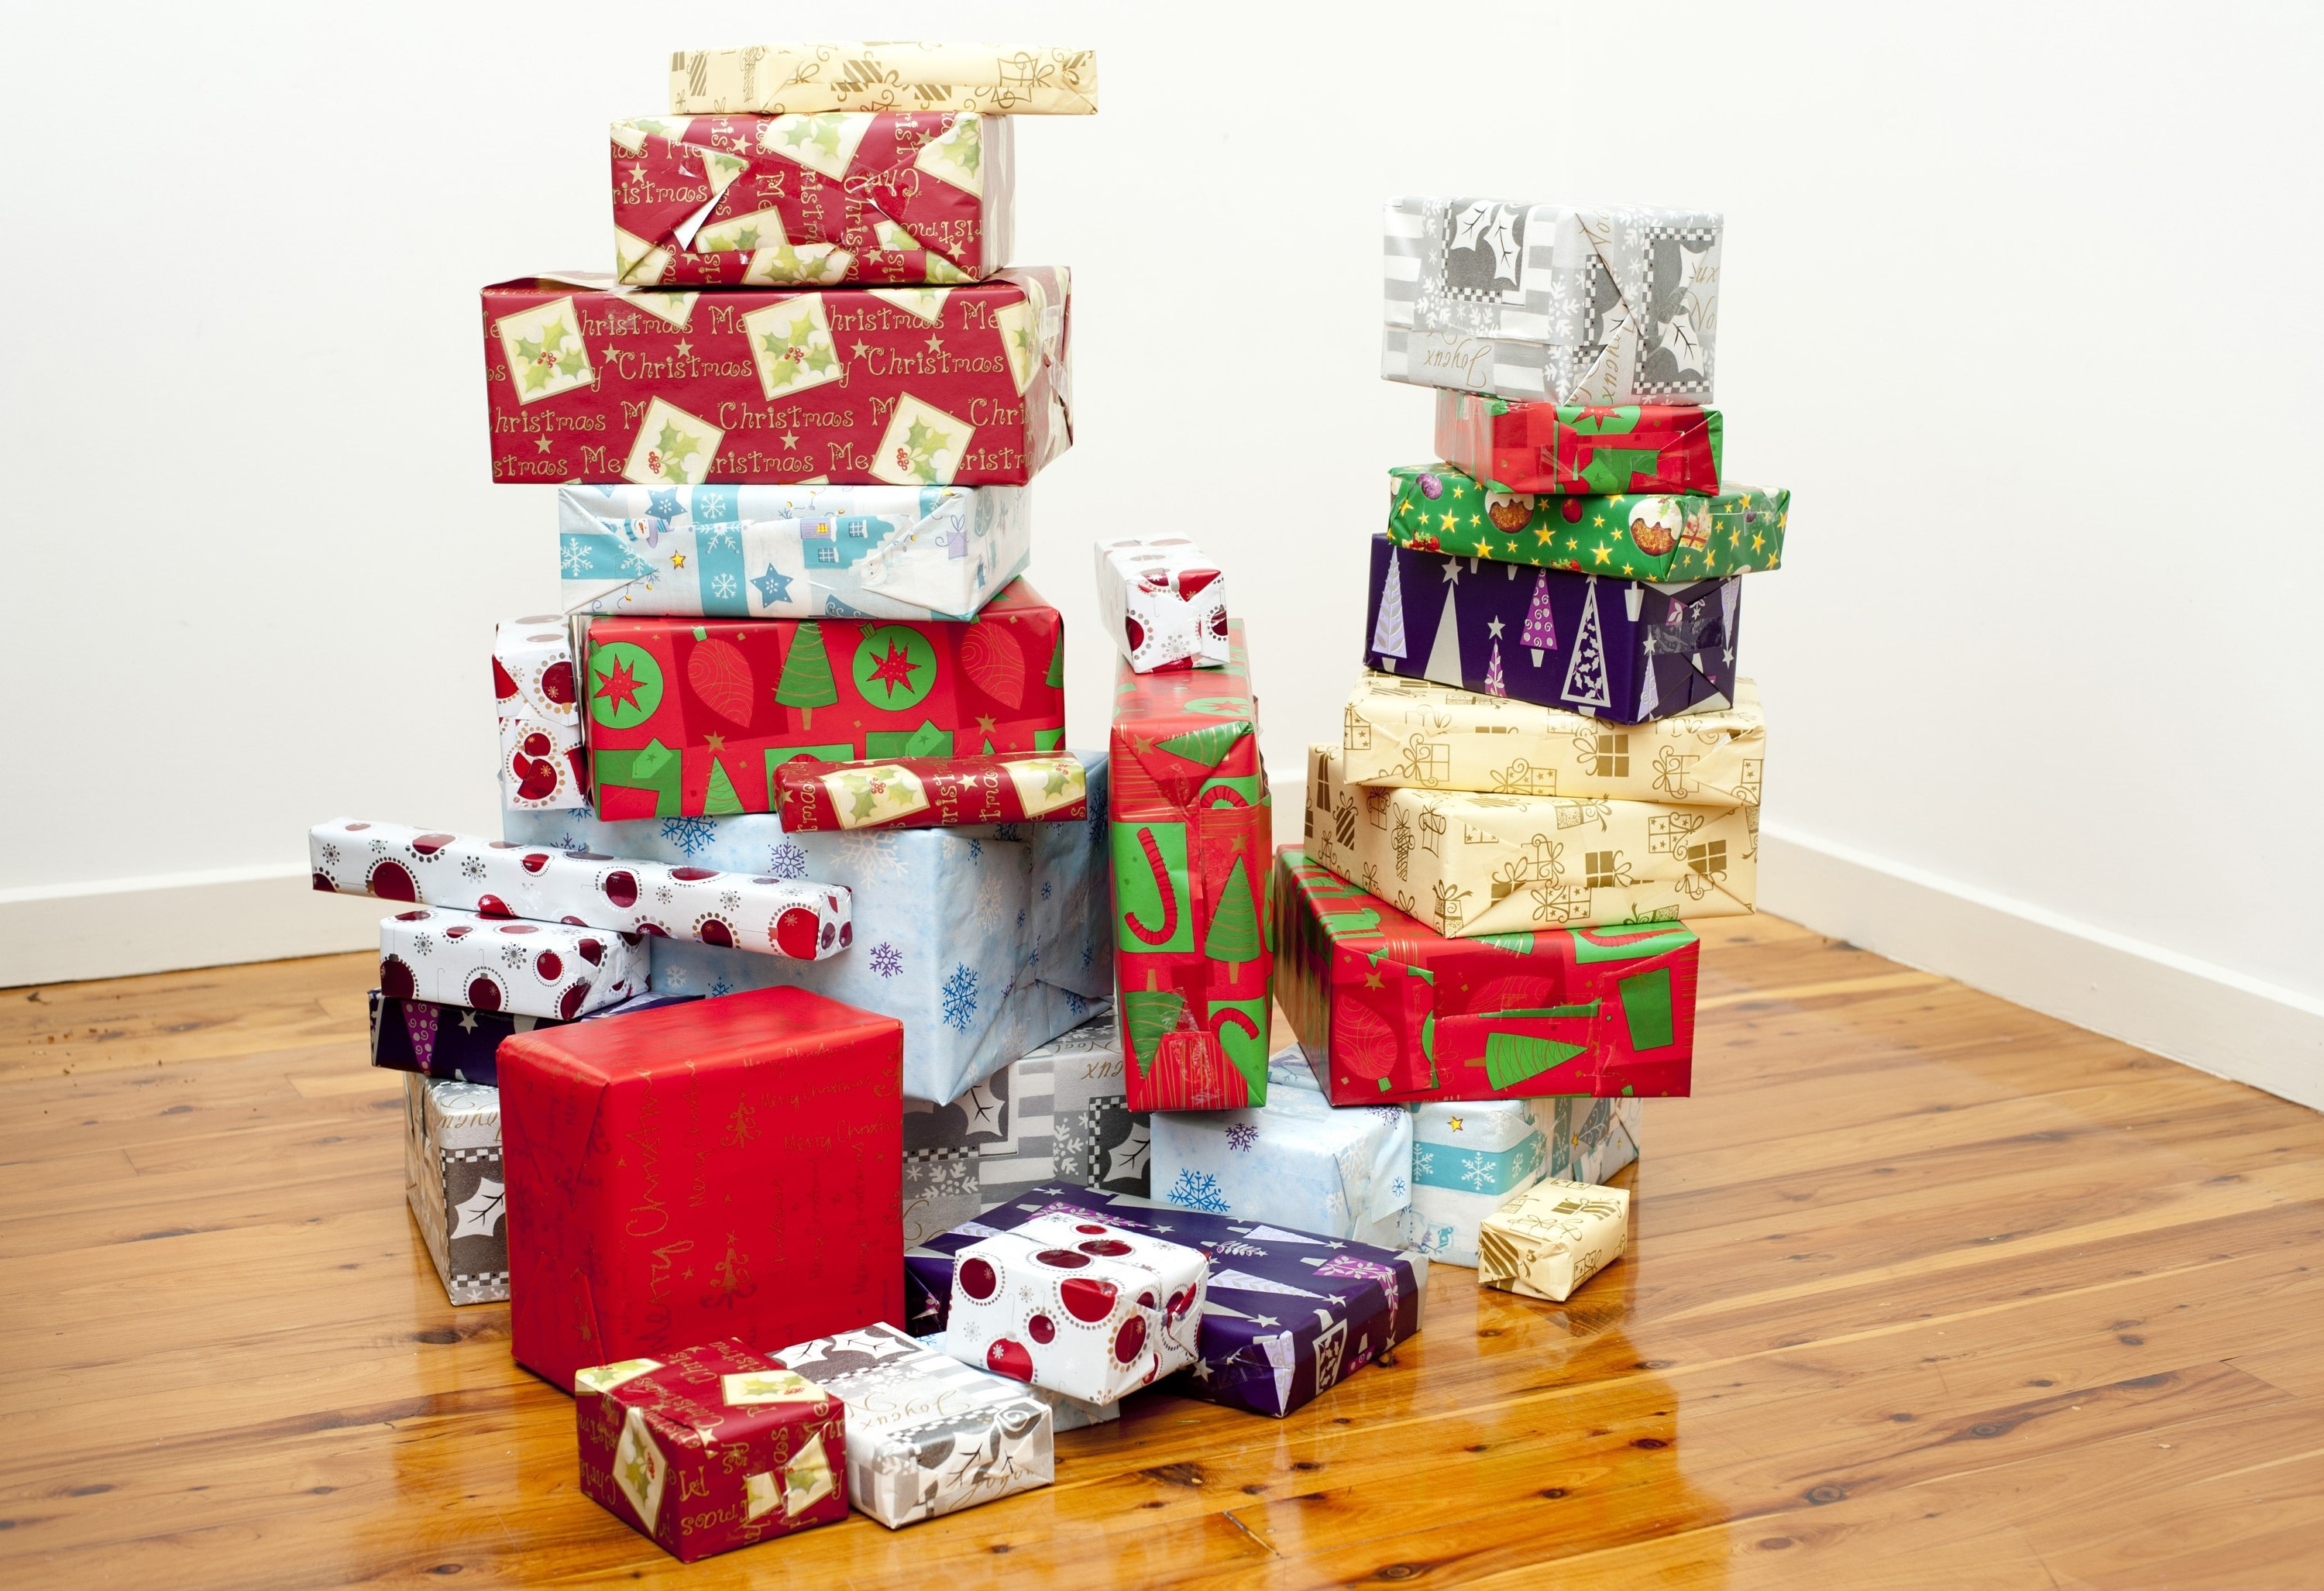 Pile of gift boxes, wrapped in decorative wrapping paper with seasonal patterns, indoors, symbol of joy and giving celebrated at Christmas